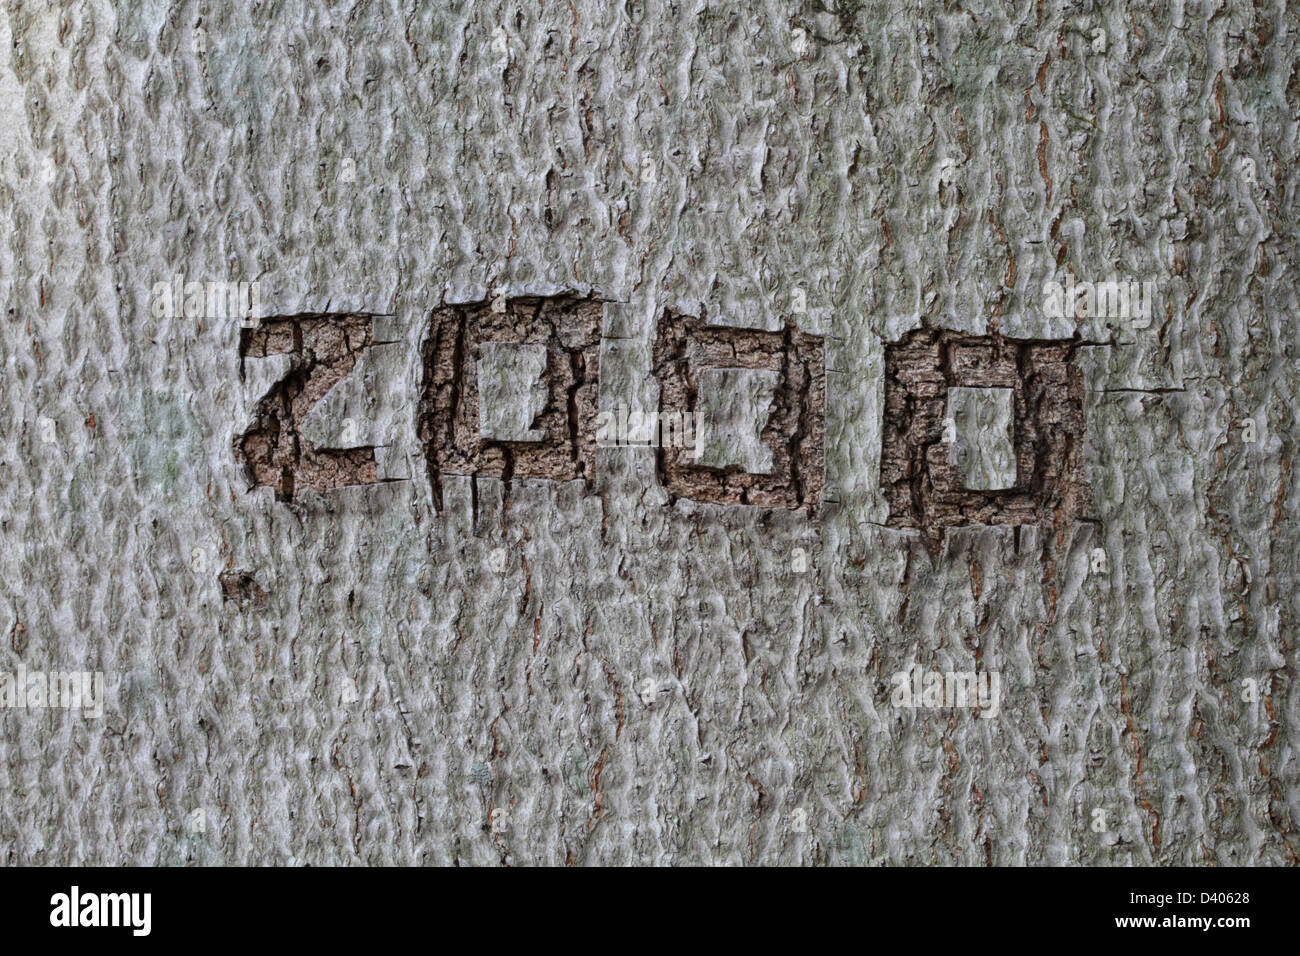 The year 2000 carved into the bark of an American beech (Fagus grandifolia), photographed 12 years later. - Stock Image